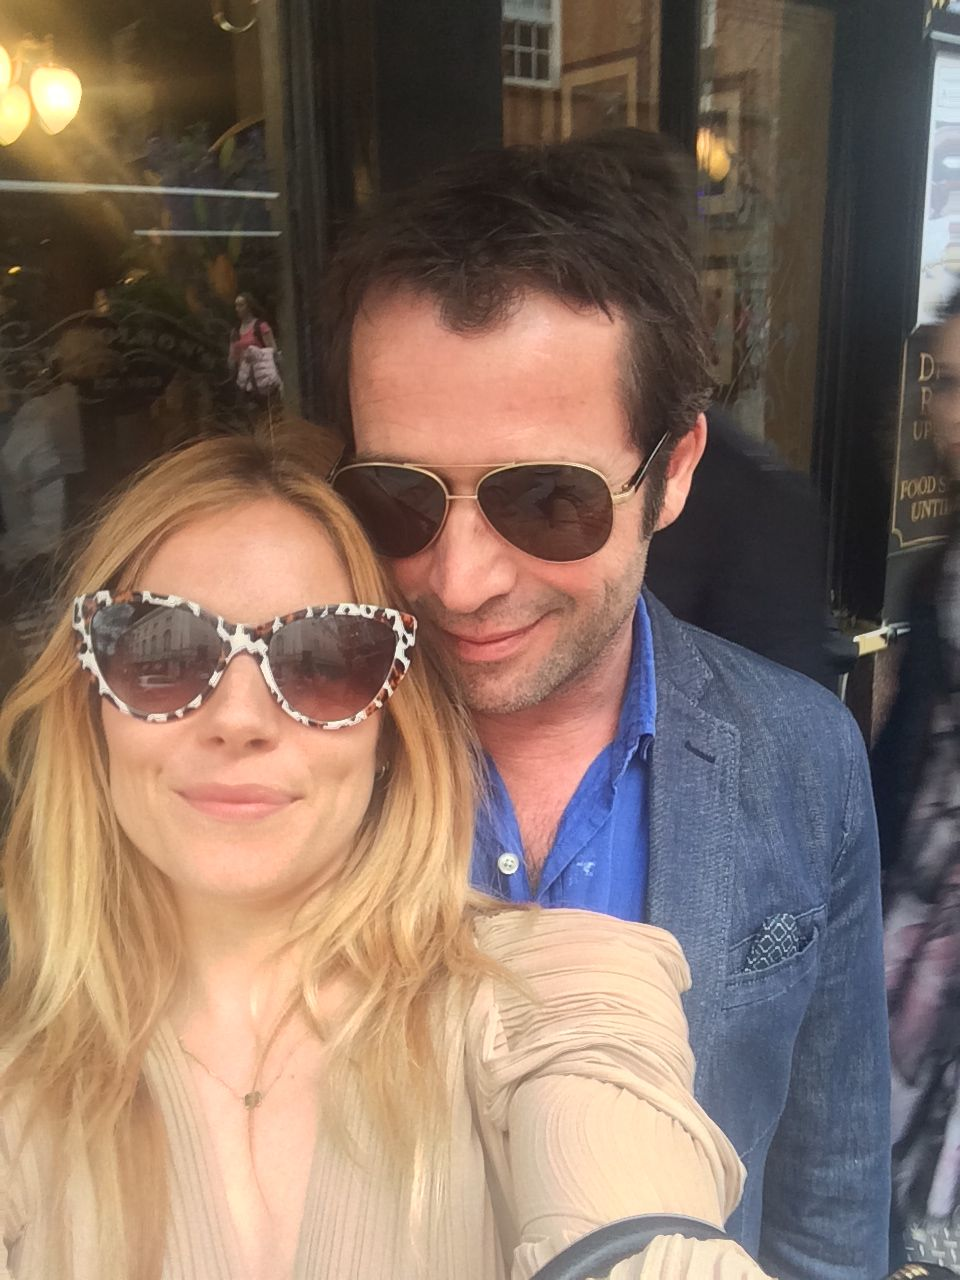 Sienna Miller wearing sunglass taking a selfie with man